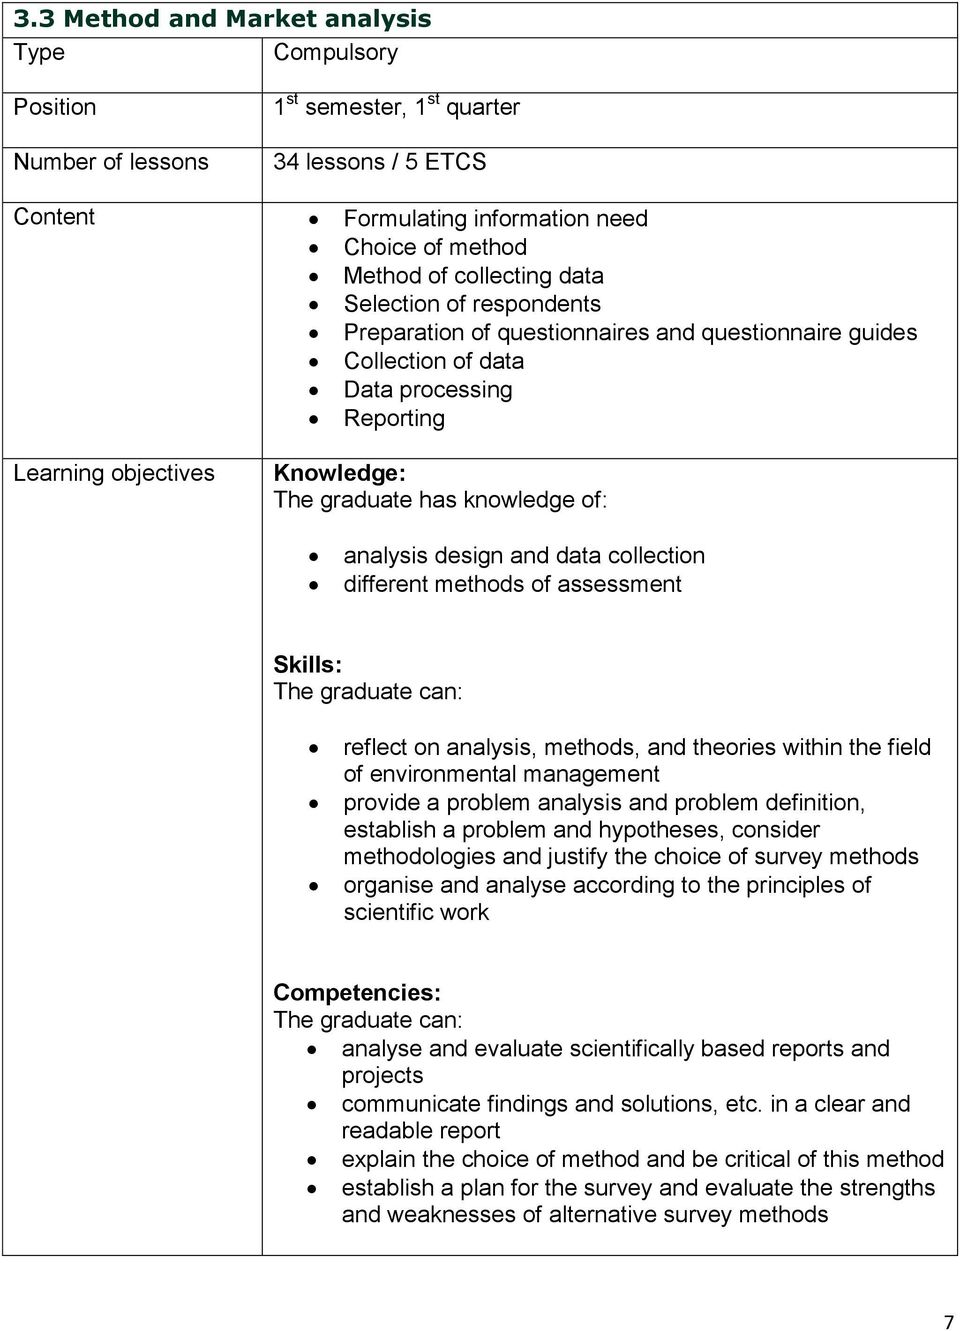 design and data collection different methods of assessment Skills: reflect on analysis, methods, and theories within the field of environmental management provide a problem analysis and problem